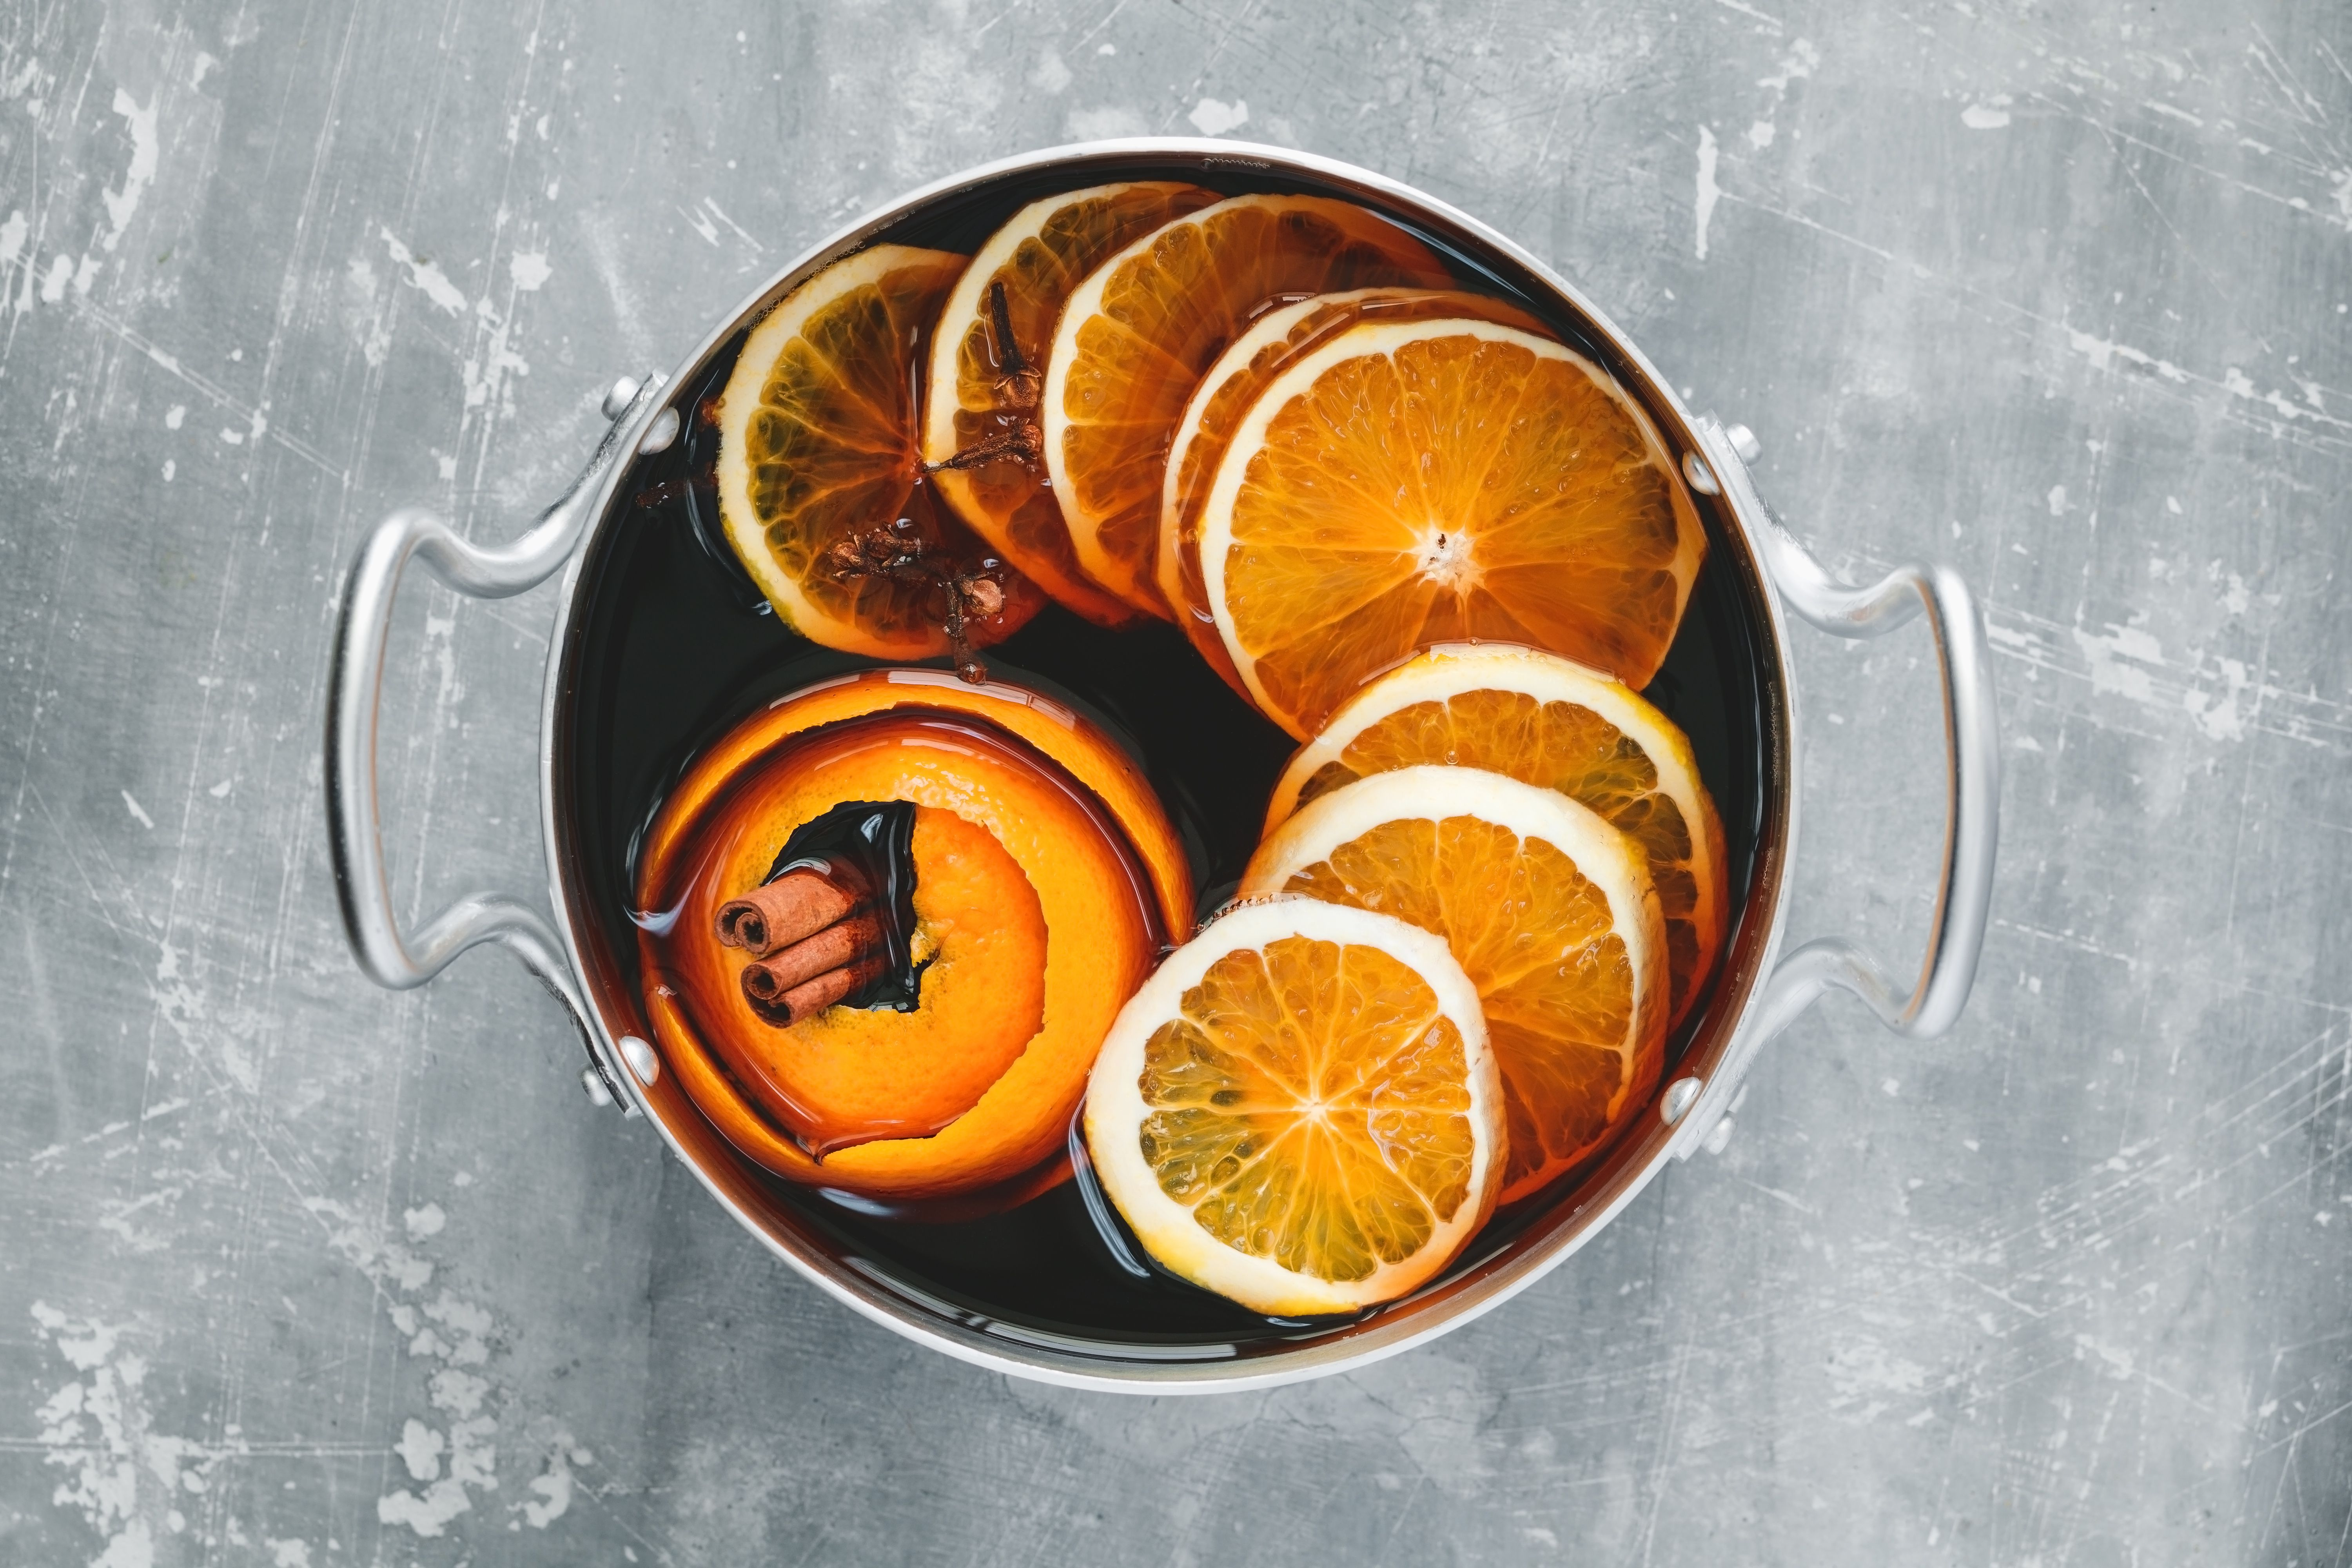 Mulled wine ingredients in a stockpot